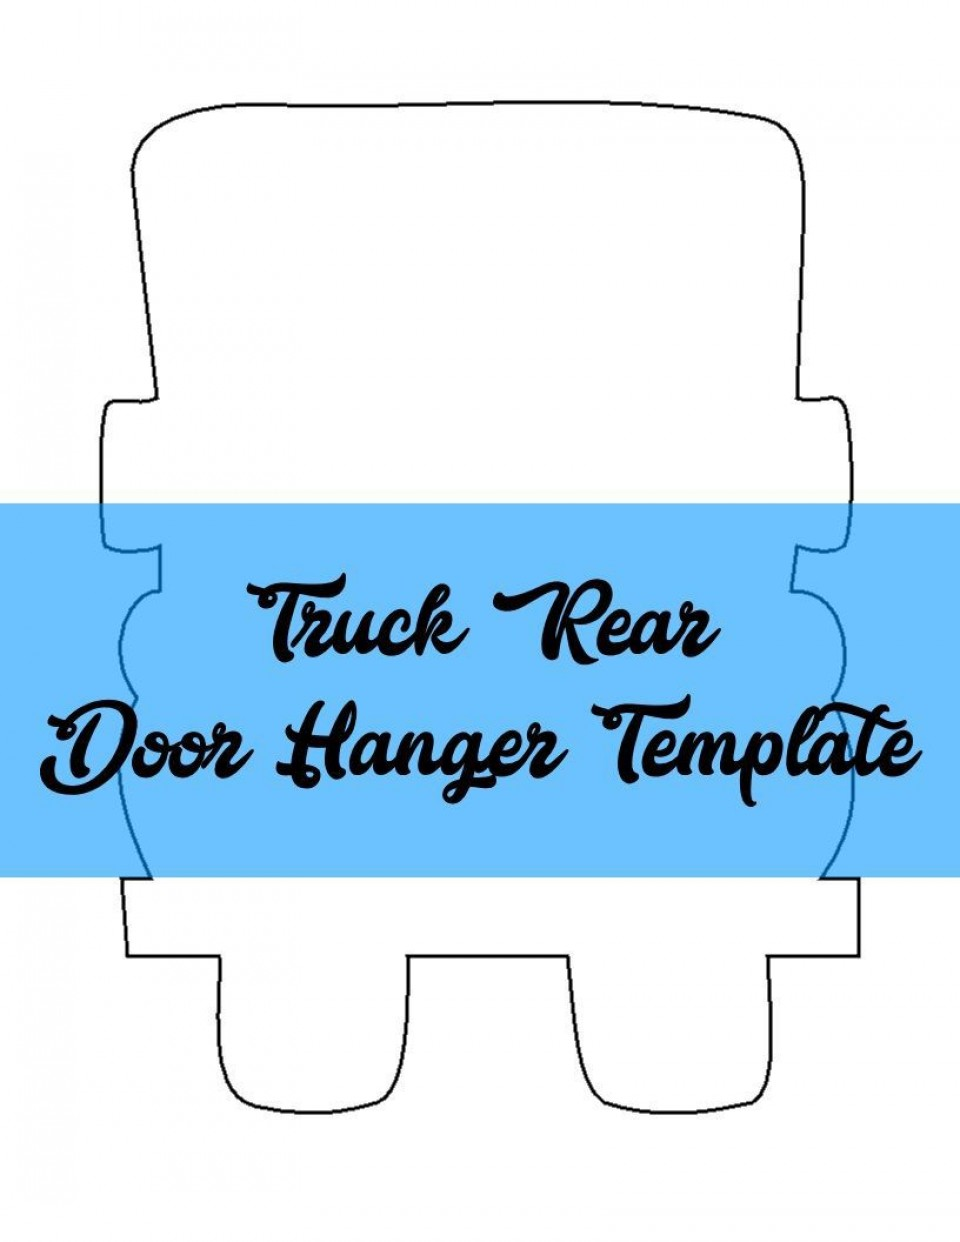 009 Remarkable Free Printable Template For Door Hanger High Definition 960